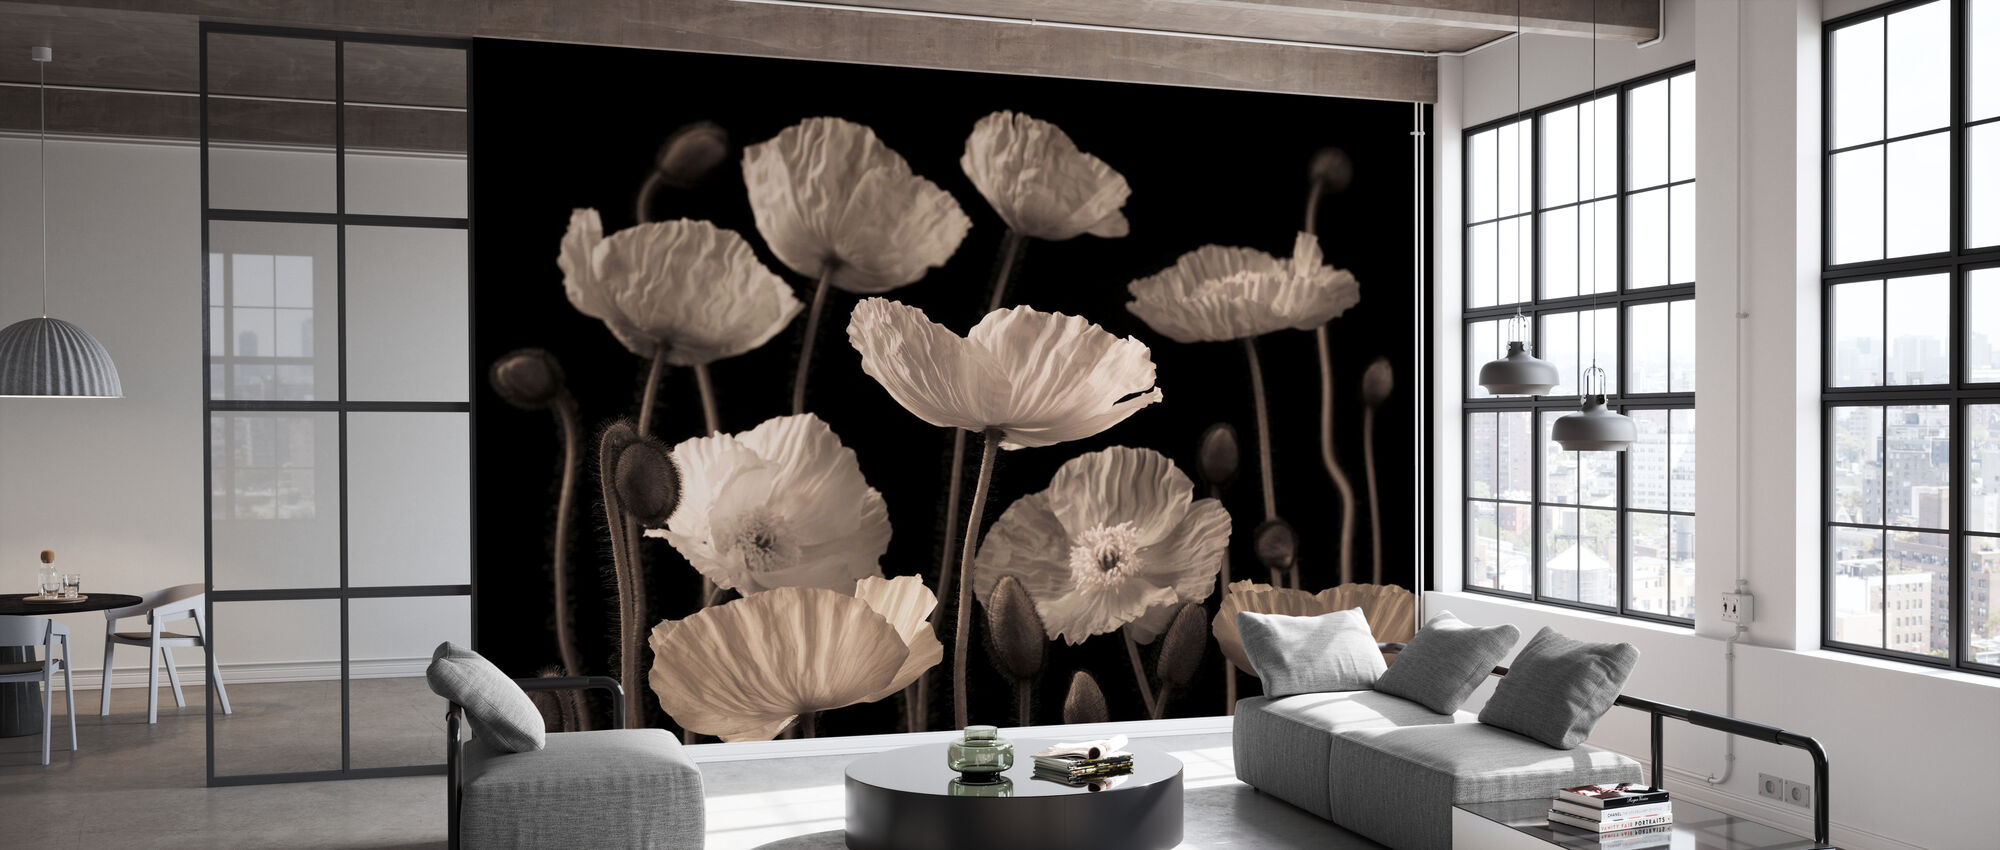 Poppies - Sepia - Wallpaper - Office